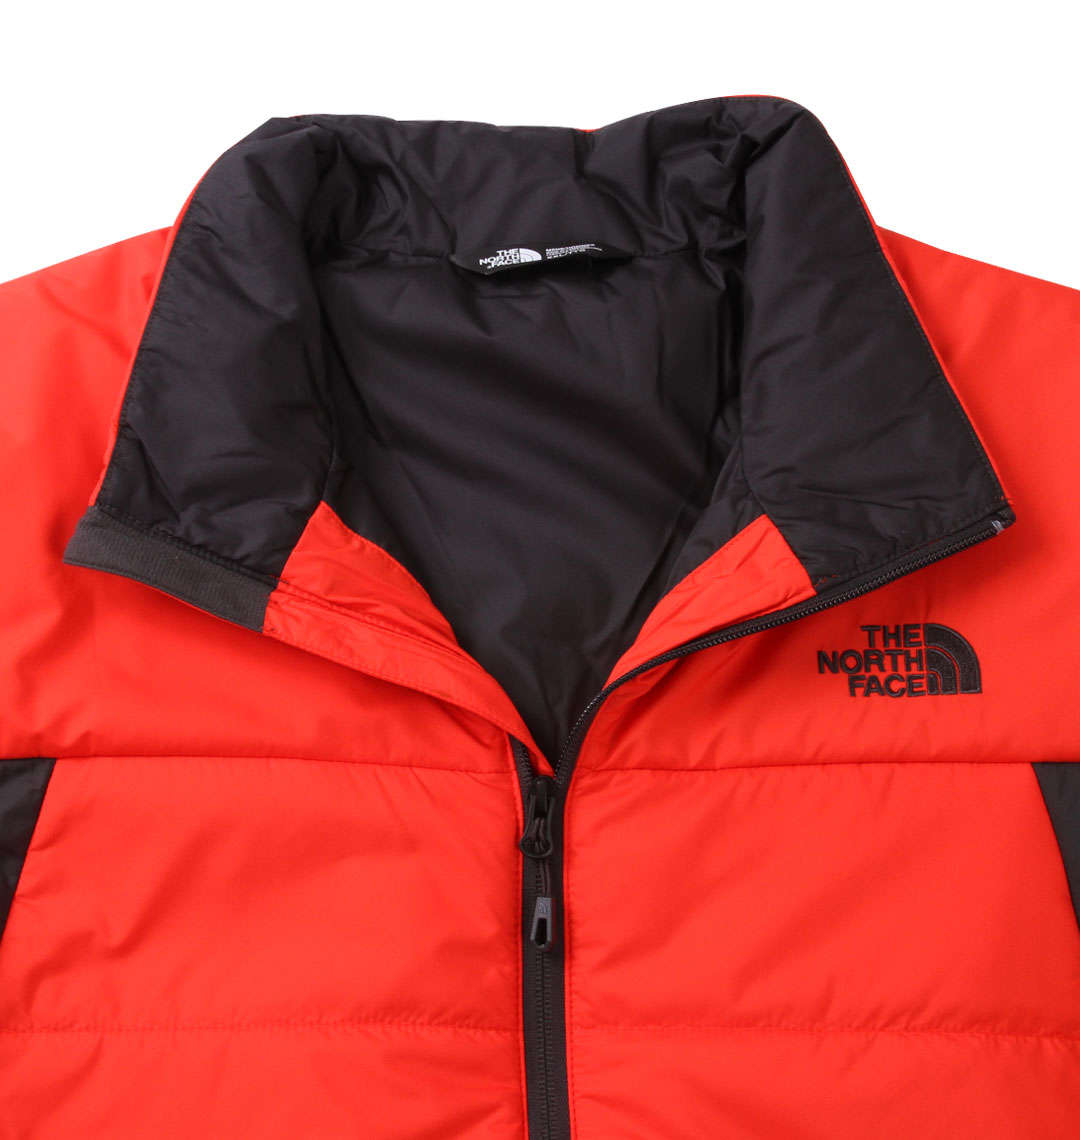 THE NORTH FACE 中綿ジャケット